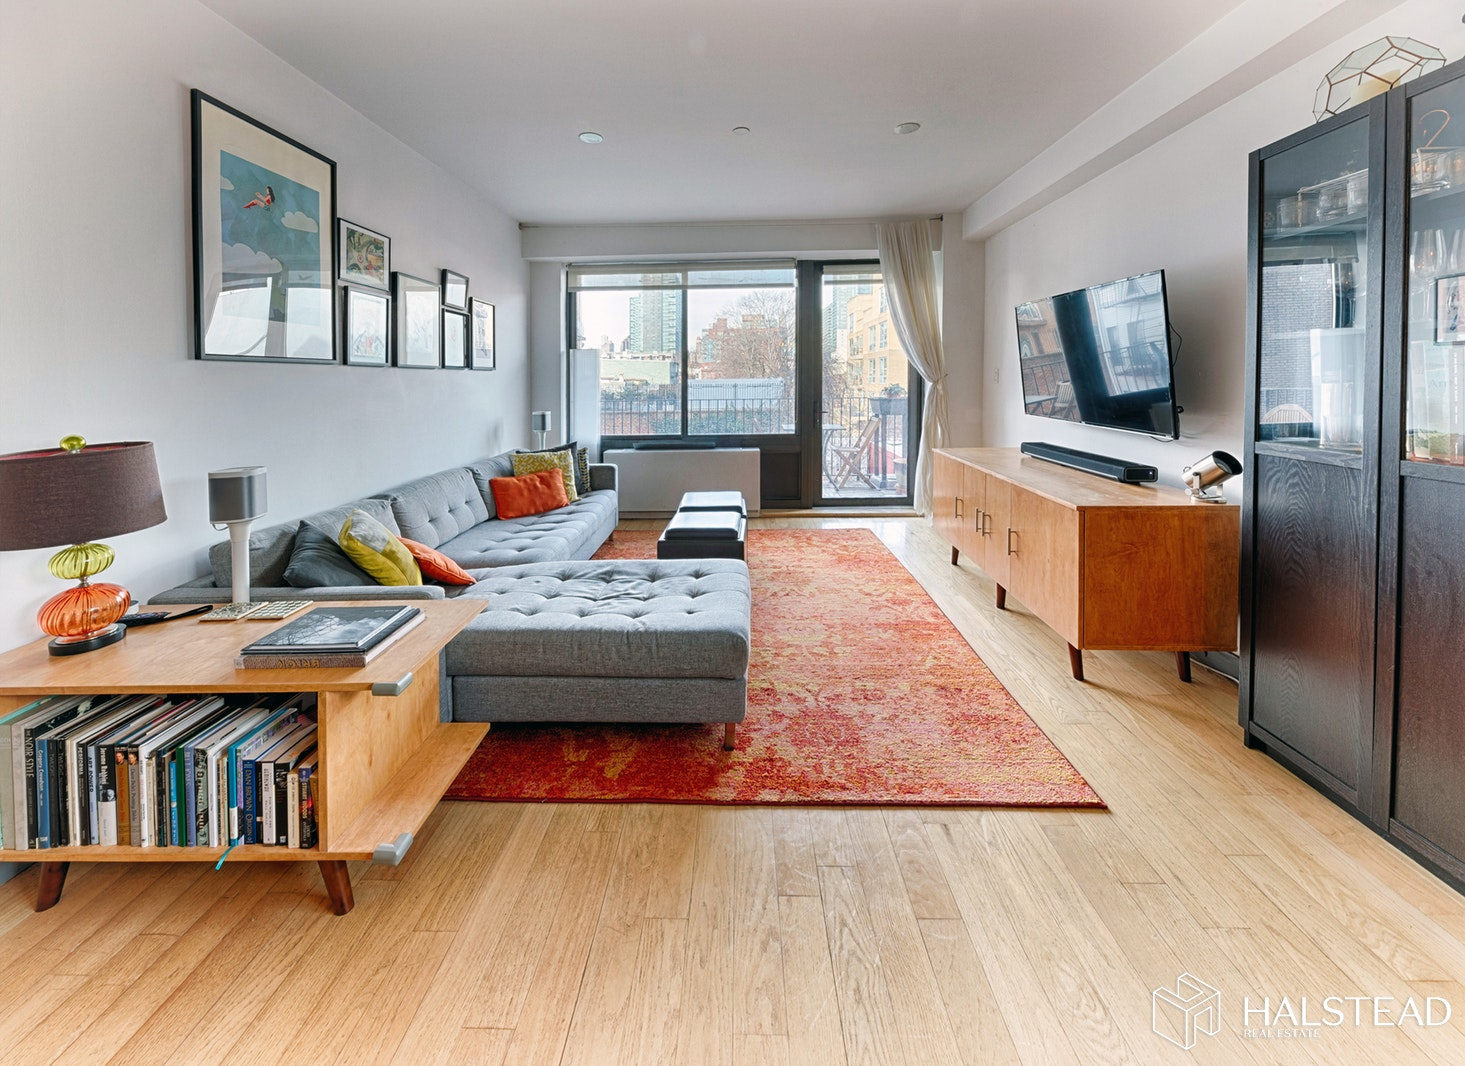 Large One Bed With Home Office & Terrace, Long Island City, Queens, NY, 11101, $1,120,000, Property For Sale, Halstead Real Estate, Photo 2